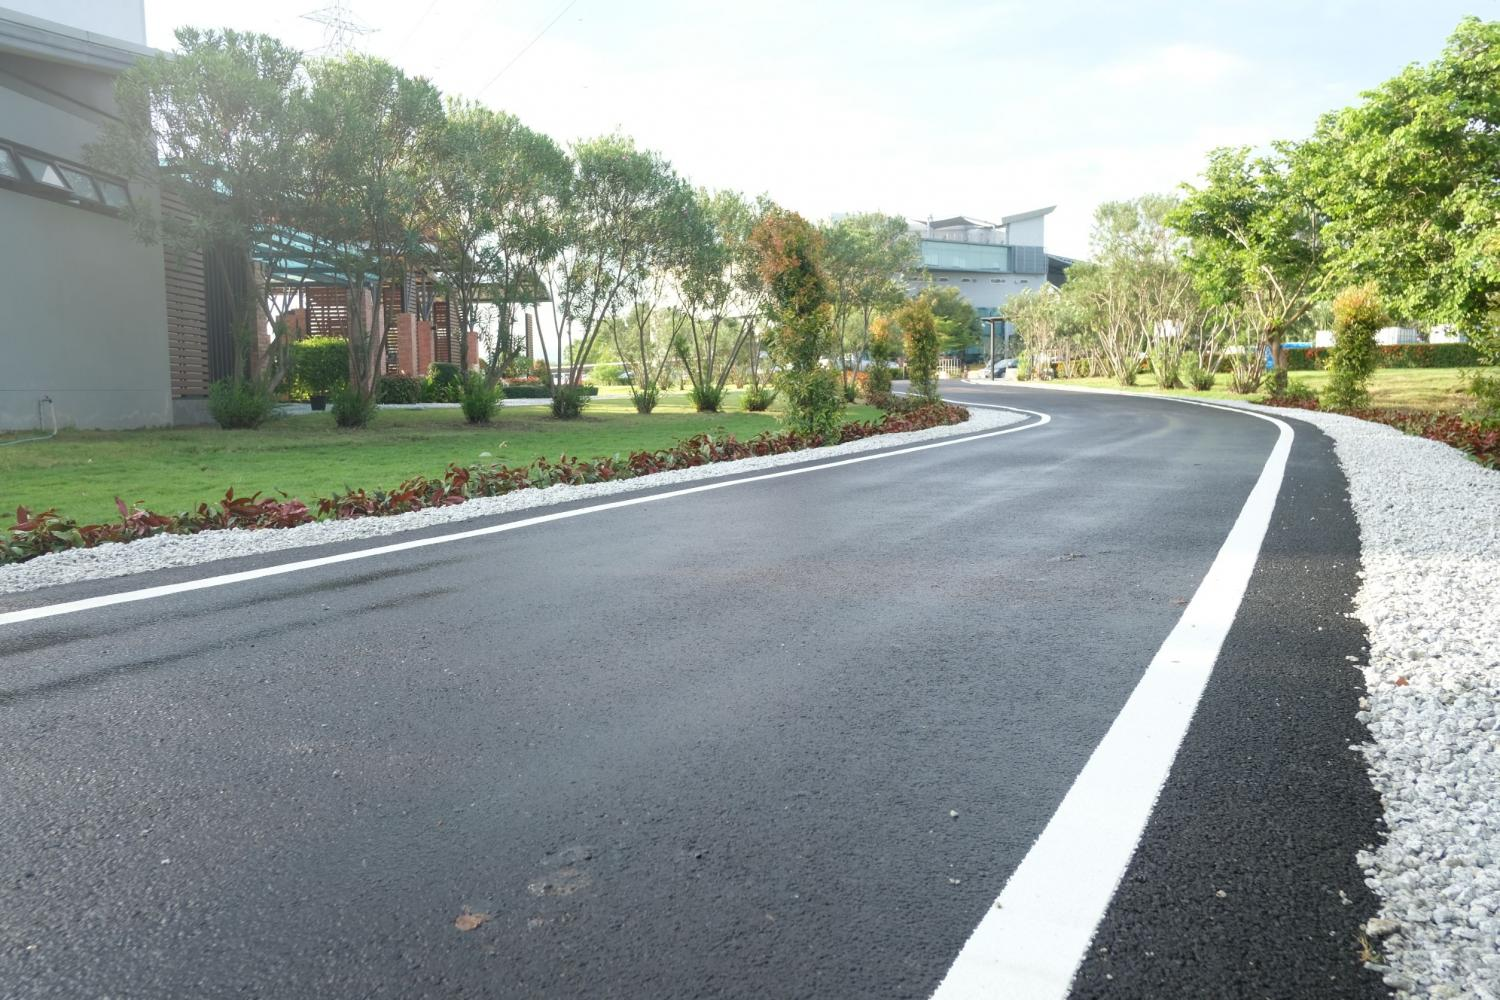 FTI: Recycled plastic roads key to BCG